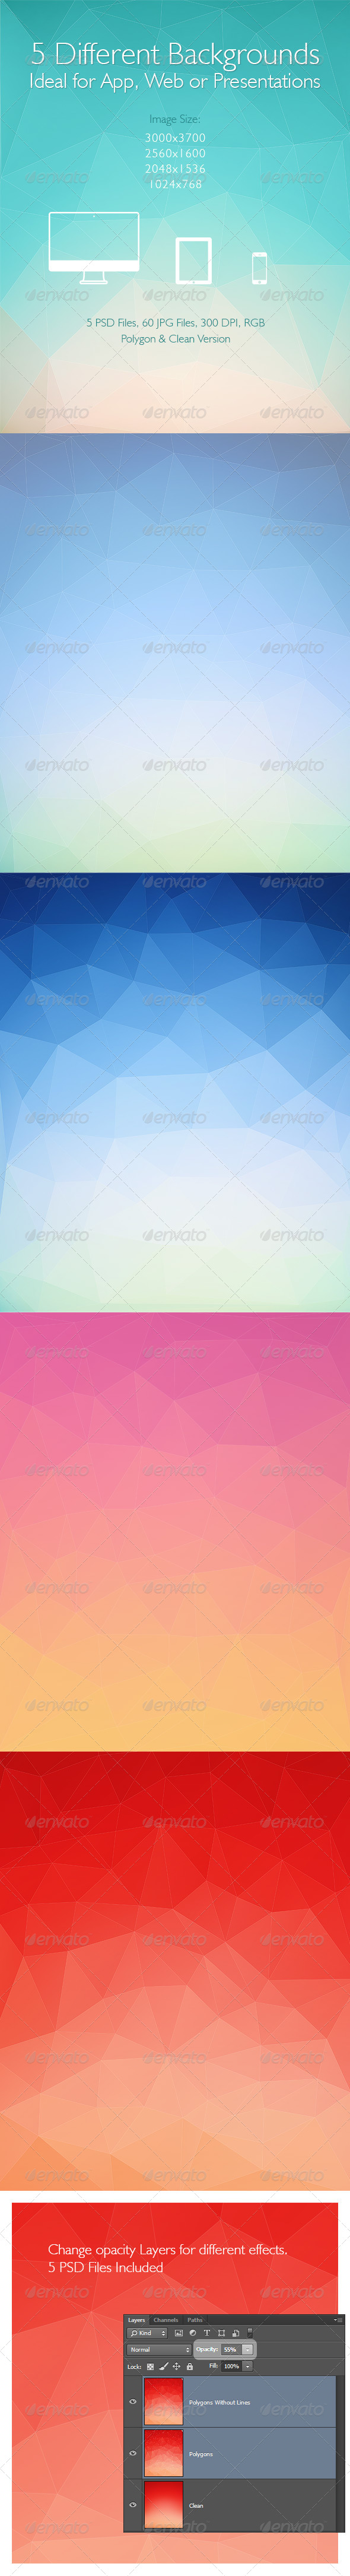 Polygon Backgrounds / 5 Different Images - Abstract Backgrounds